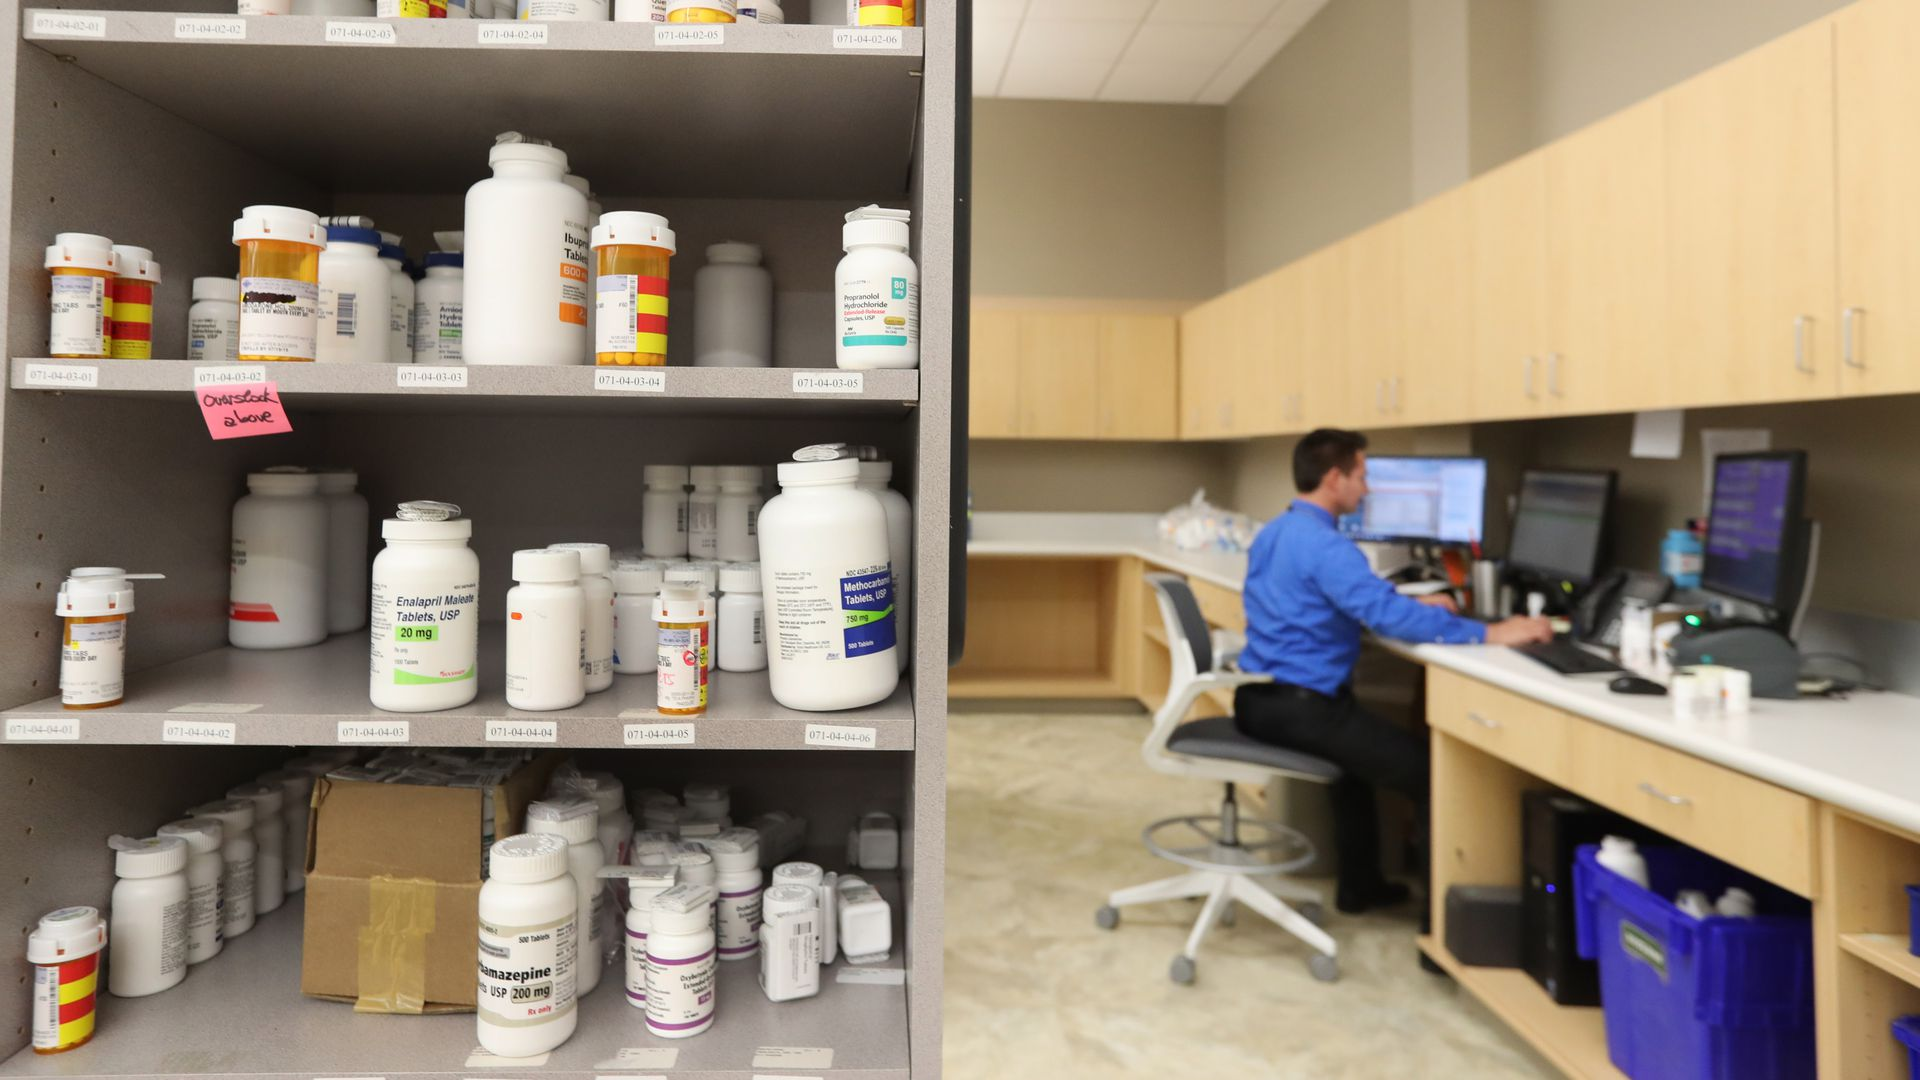 A pharmacy technician works at a desk with drugs sitting on a shelf in the foreground.